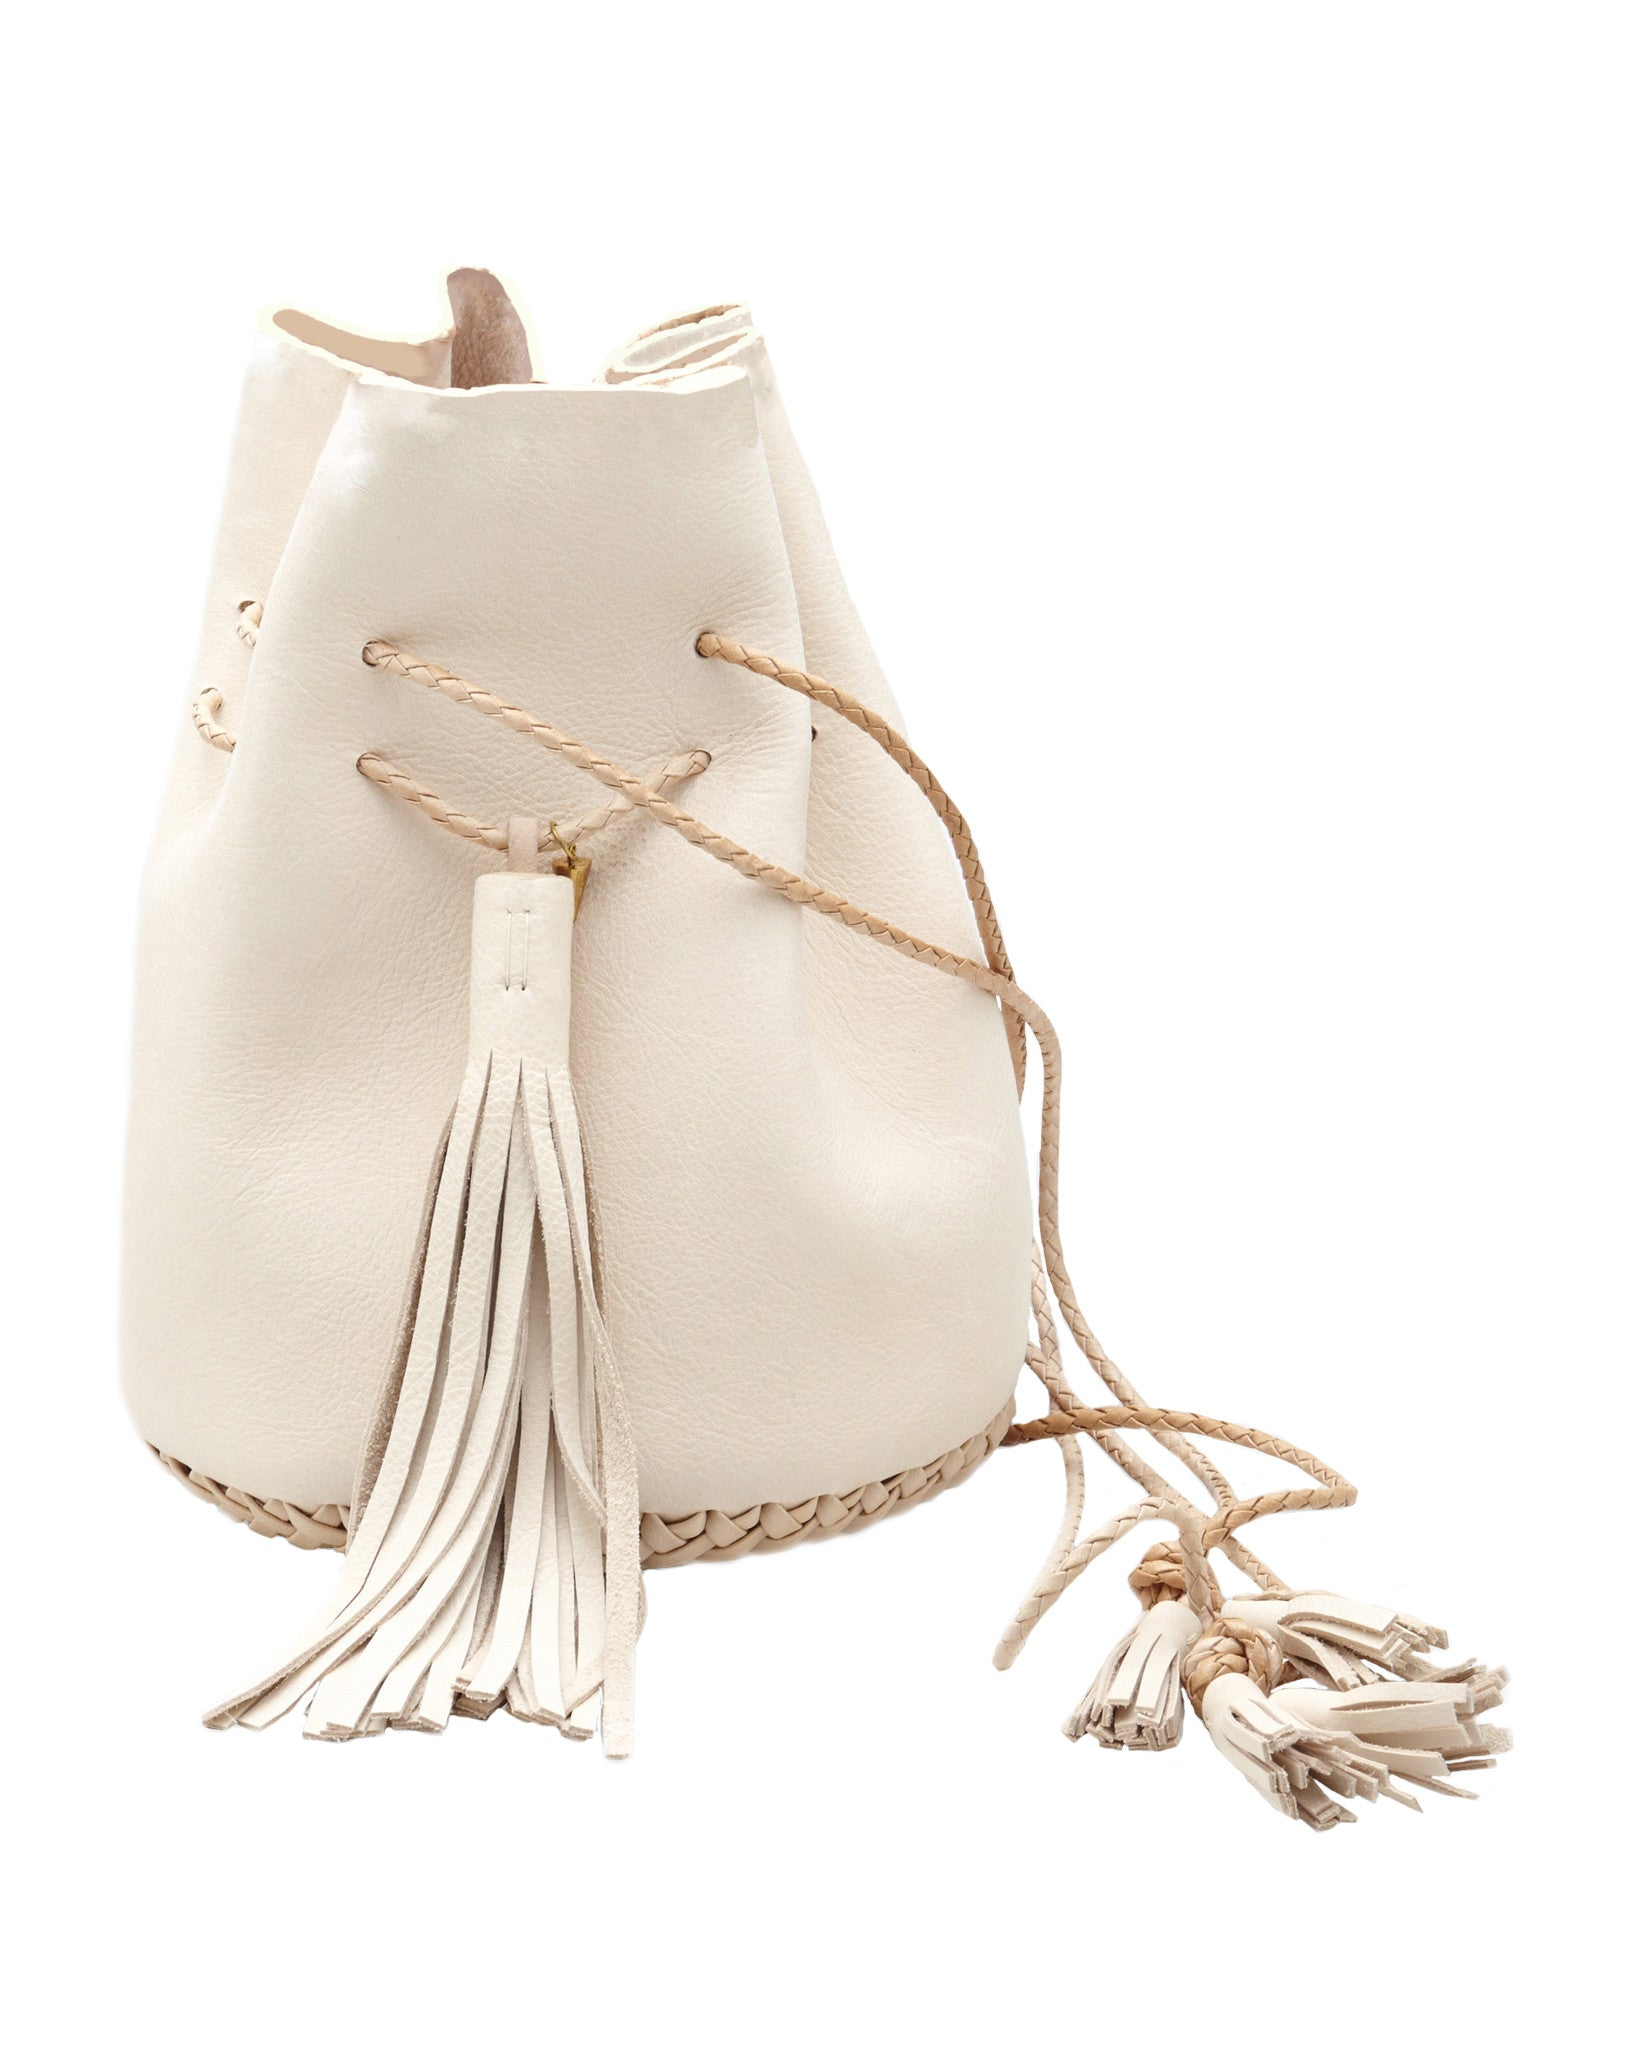 Natural Pink Tan Vegetable Tanned Leather Signature Classic Bullet Bag Wendy Nichol Handmade in NYC New York City Leather Drawstring Bucket Pouch Purse Handbag Large Fringe Tassel Custom Made to Order